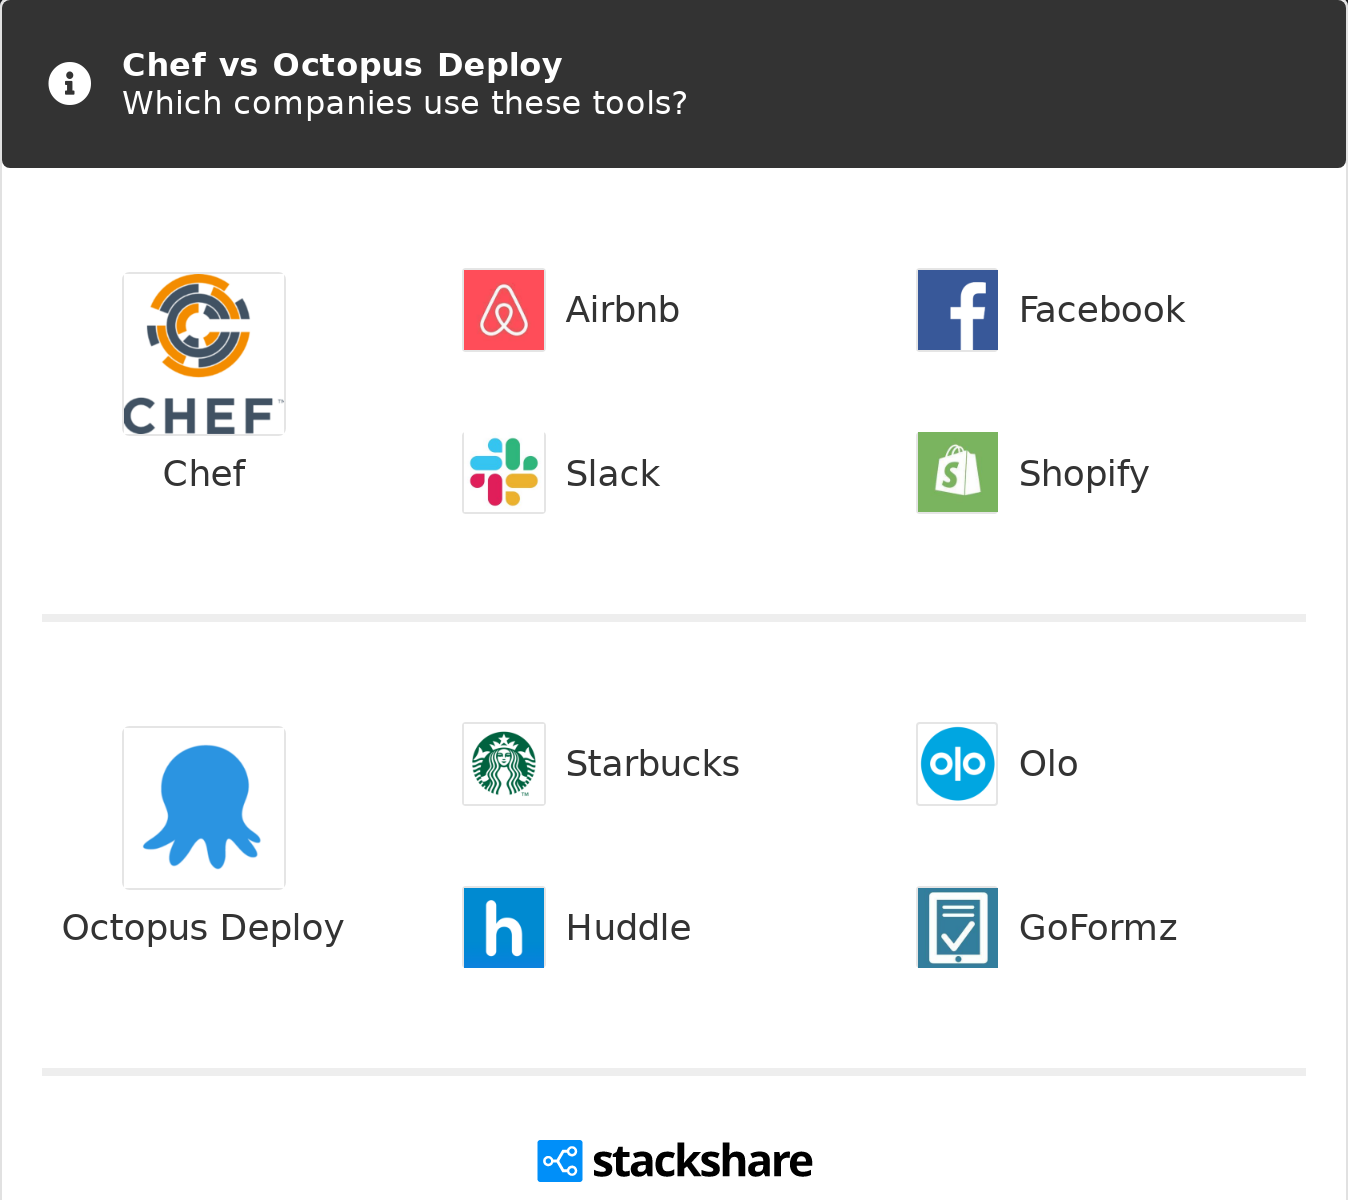 Chef vs Octopus Deploy | What are the differences?